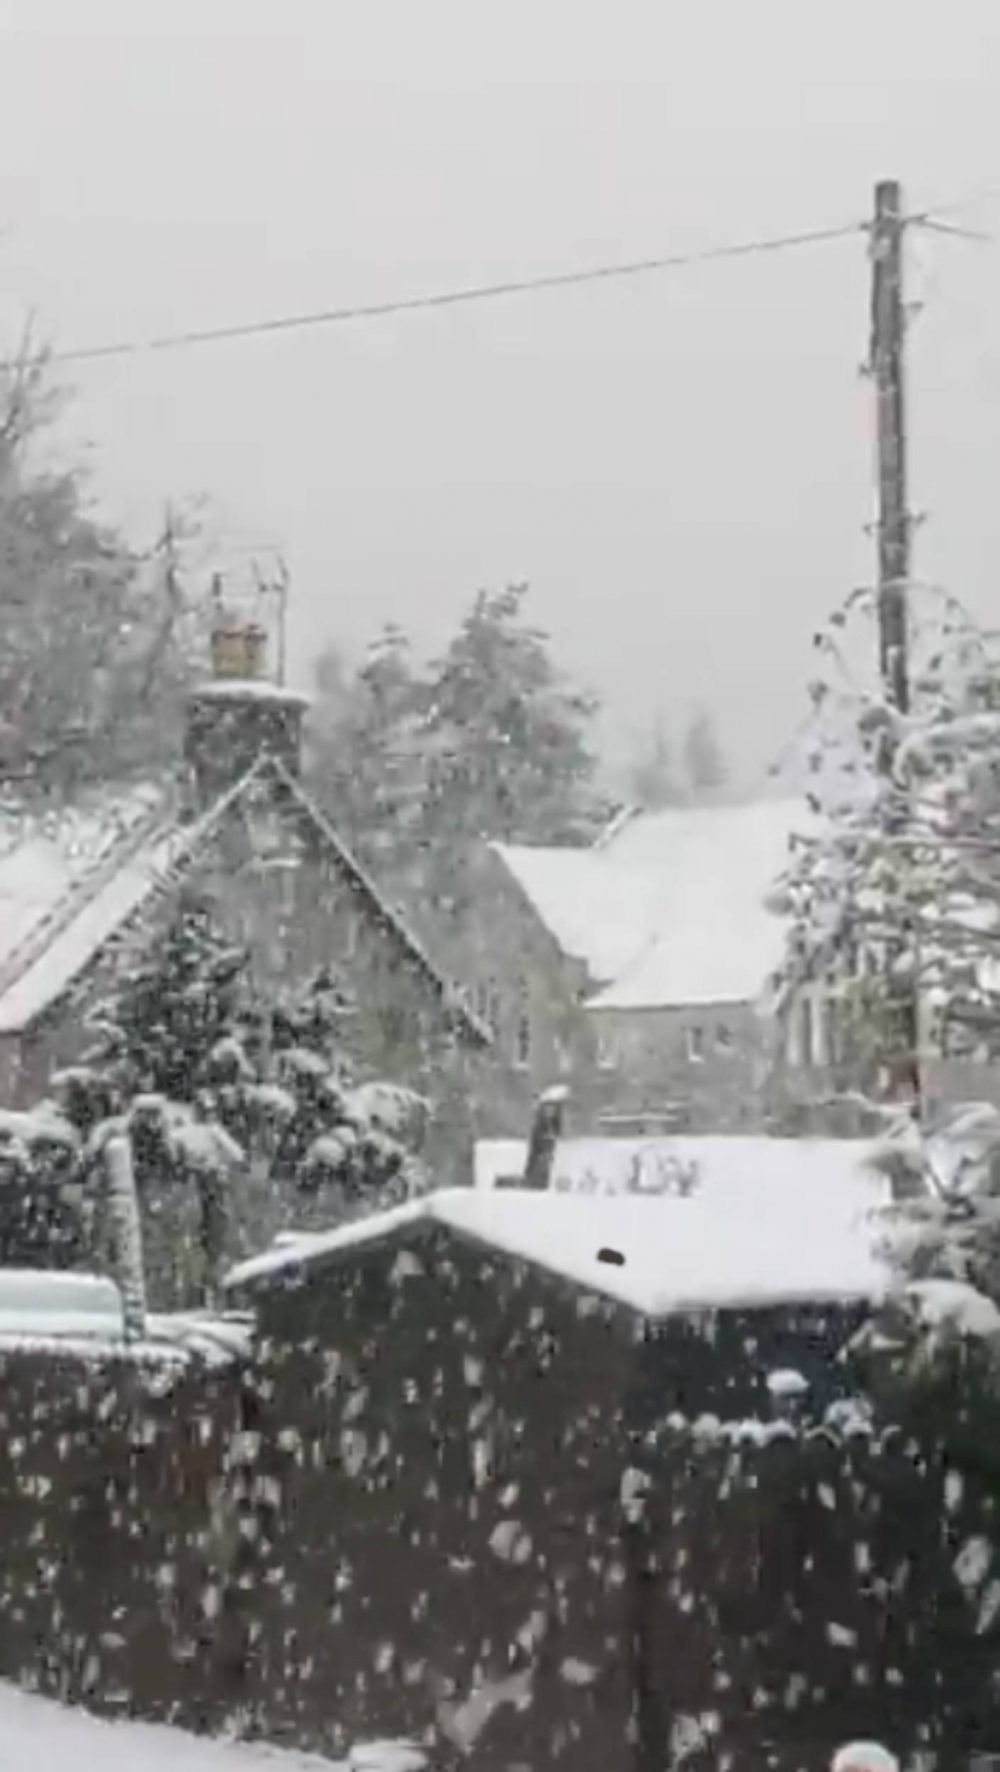 Snow in May in Scottish Highlands | Scottish Weather News